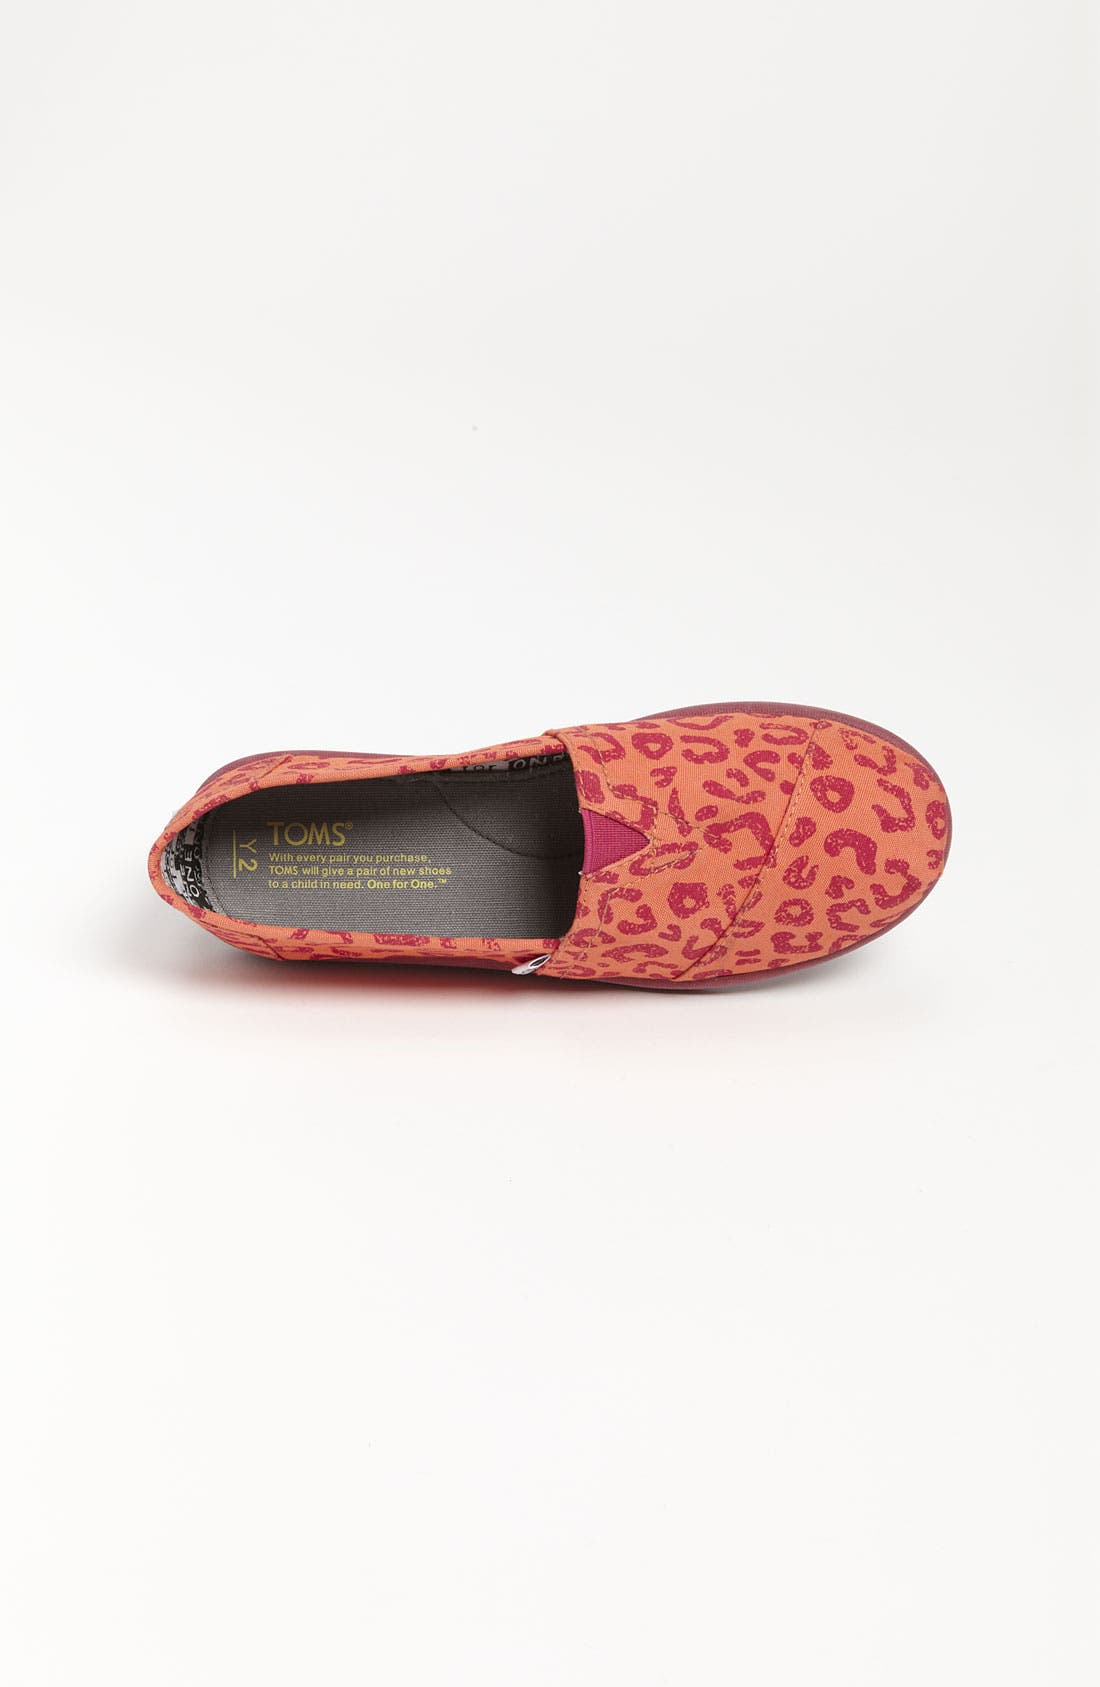 Alternate Image 3  - TOMS 'Classic Youth - Brushed Leopard' Slip-On (Toddler, Little Kid & Big Kid) (Nordstrom Exclusive)